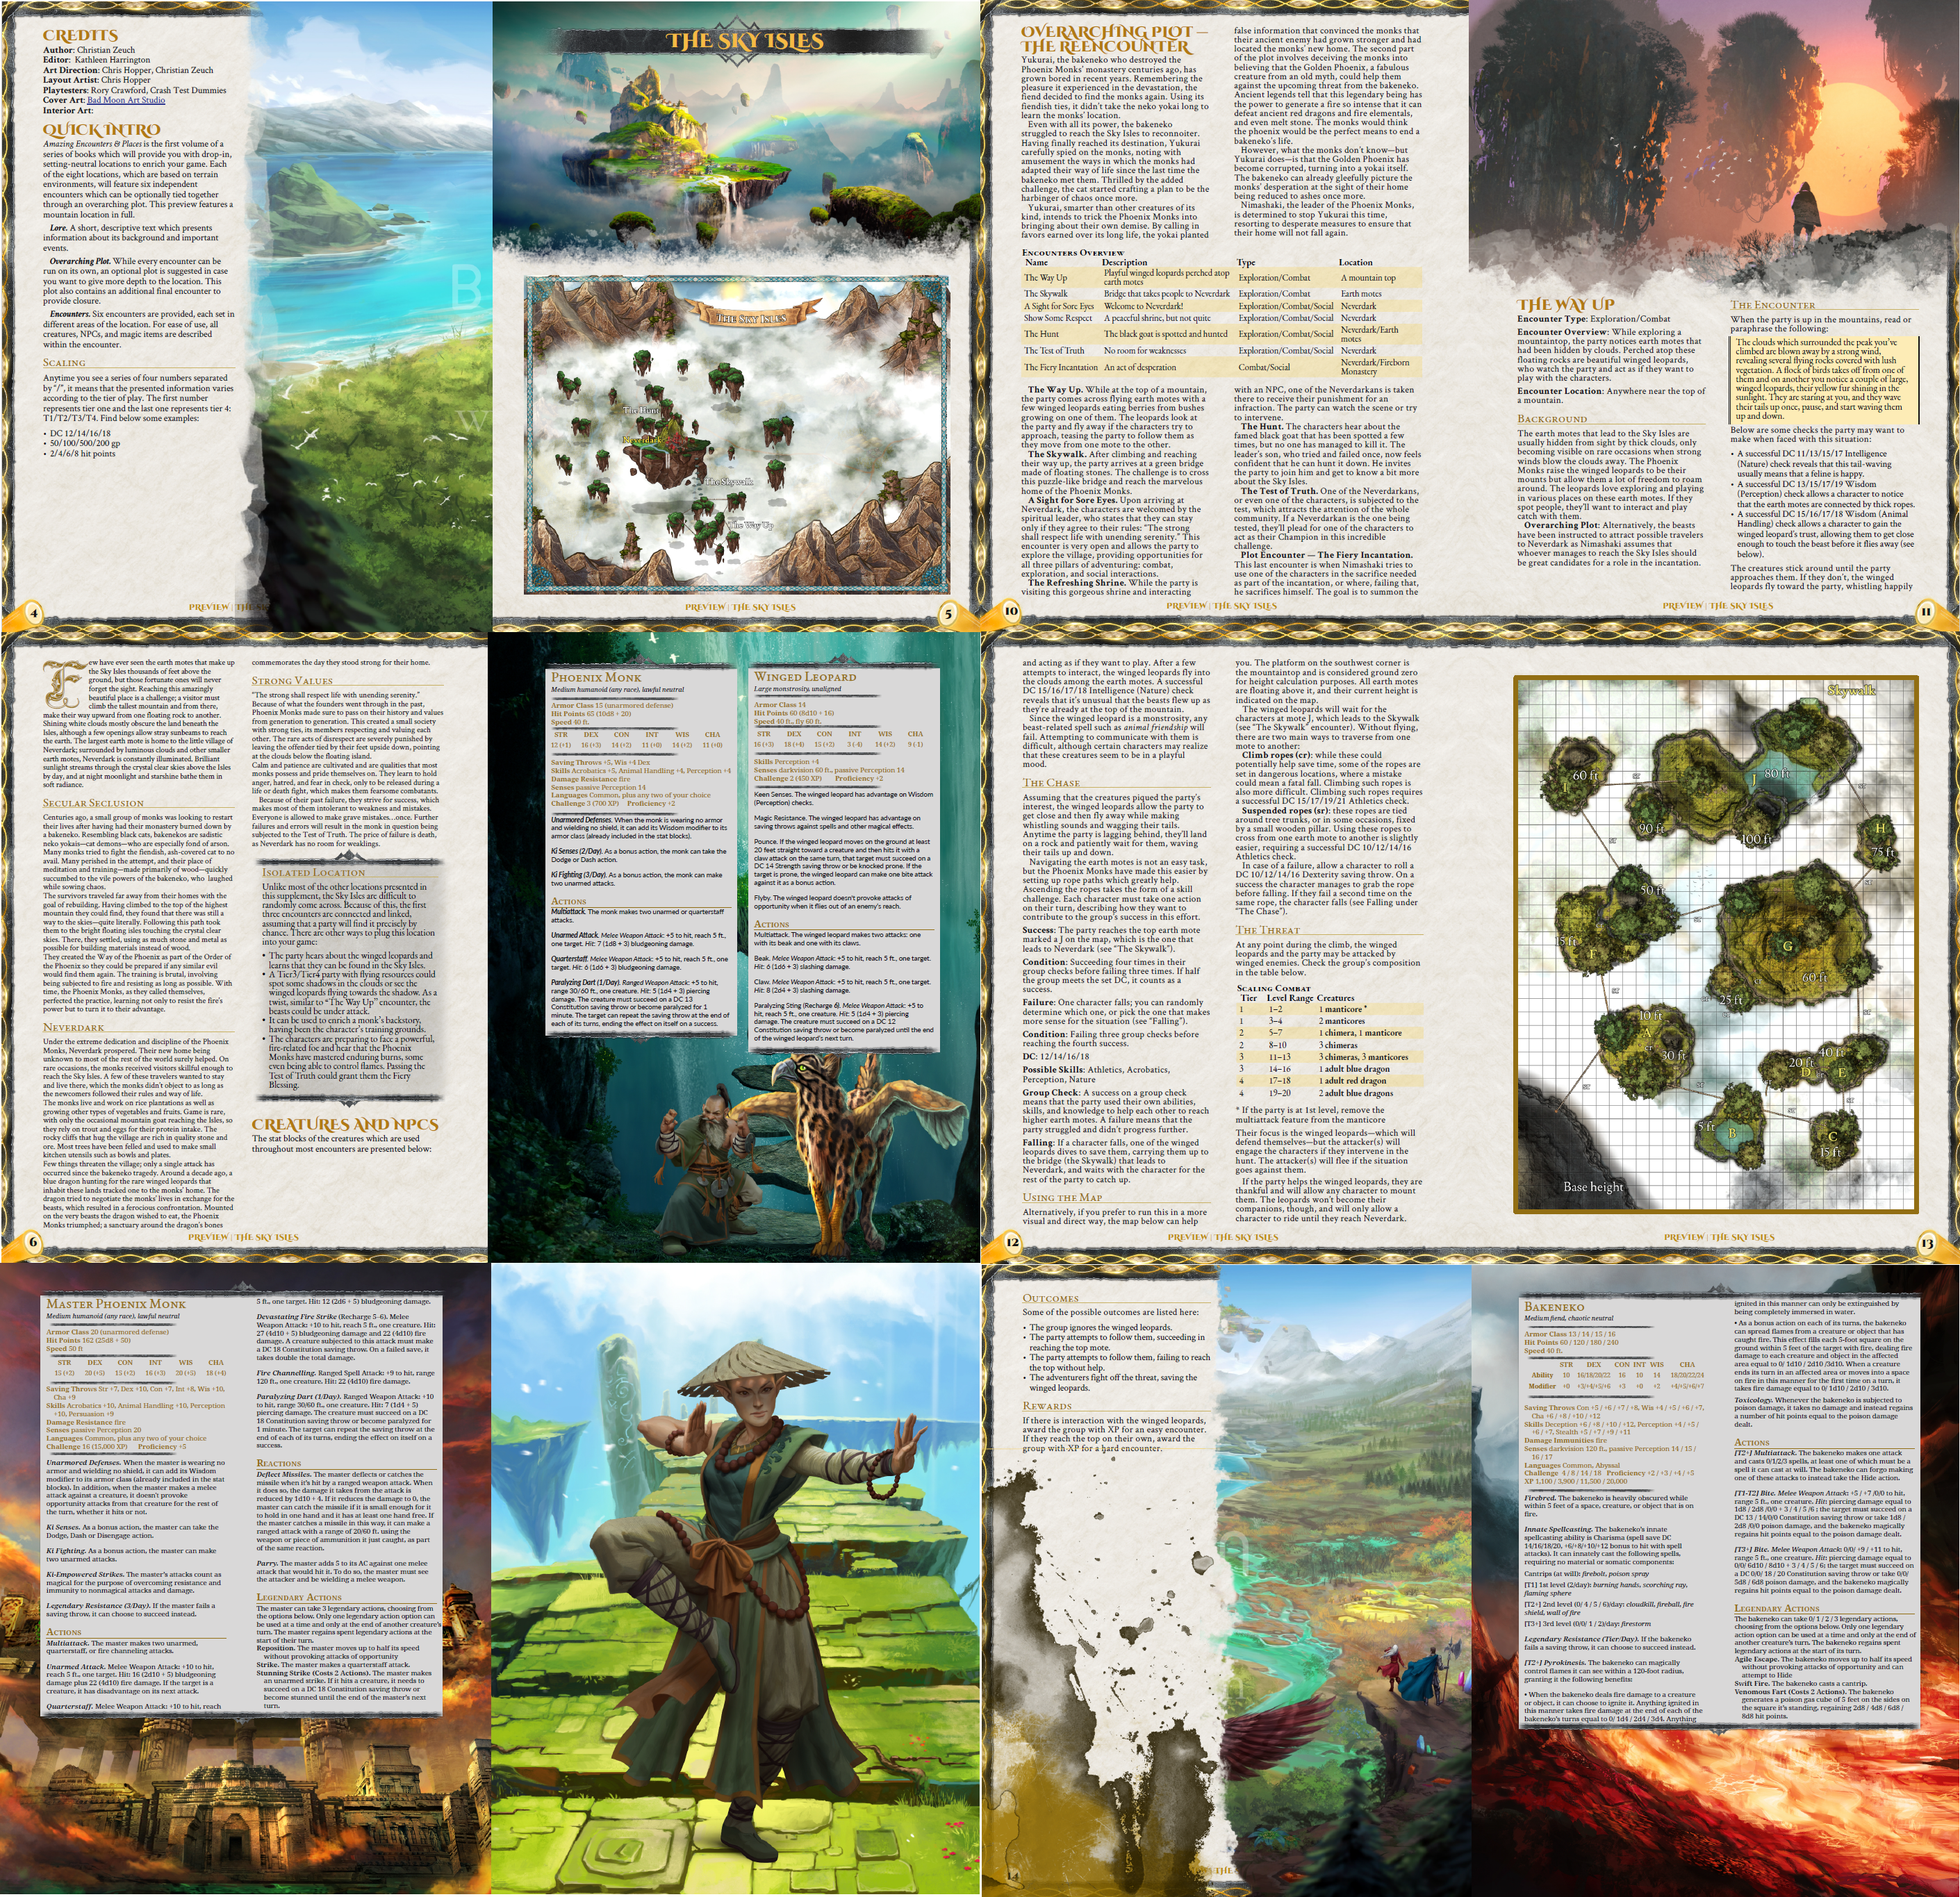 Preview Layout for Amazing Encounters & Places